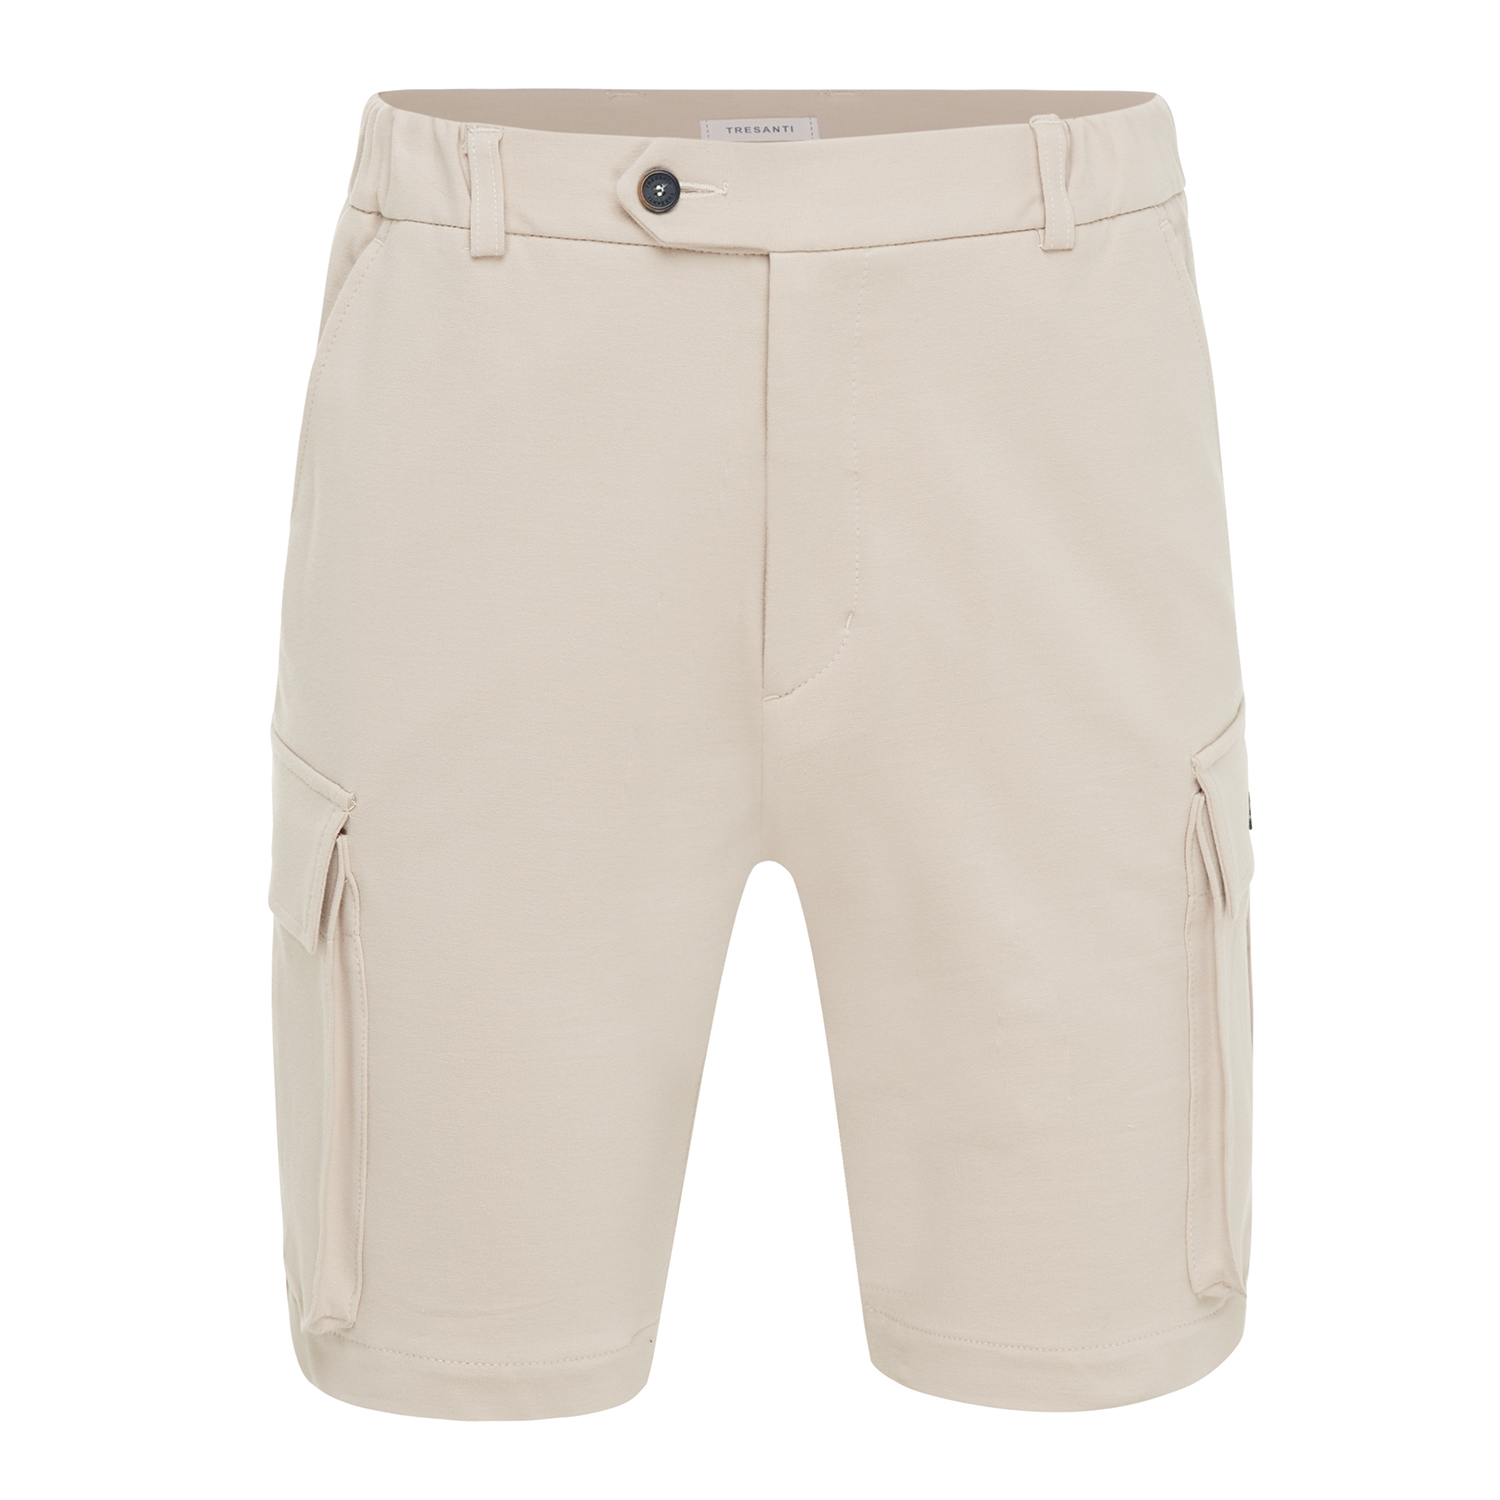 Morgan | Shorts with cargo pockets beige